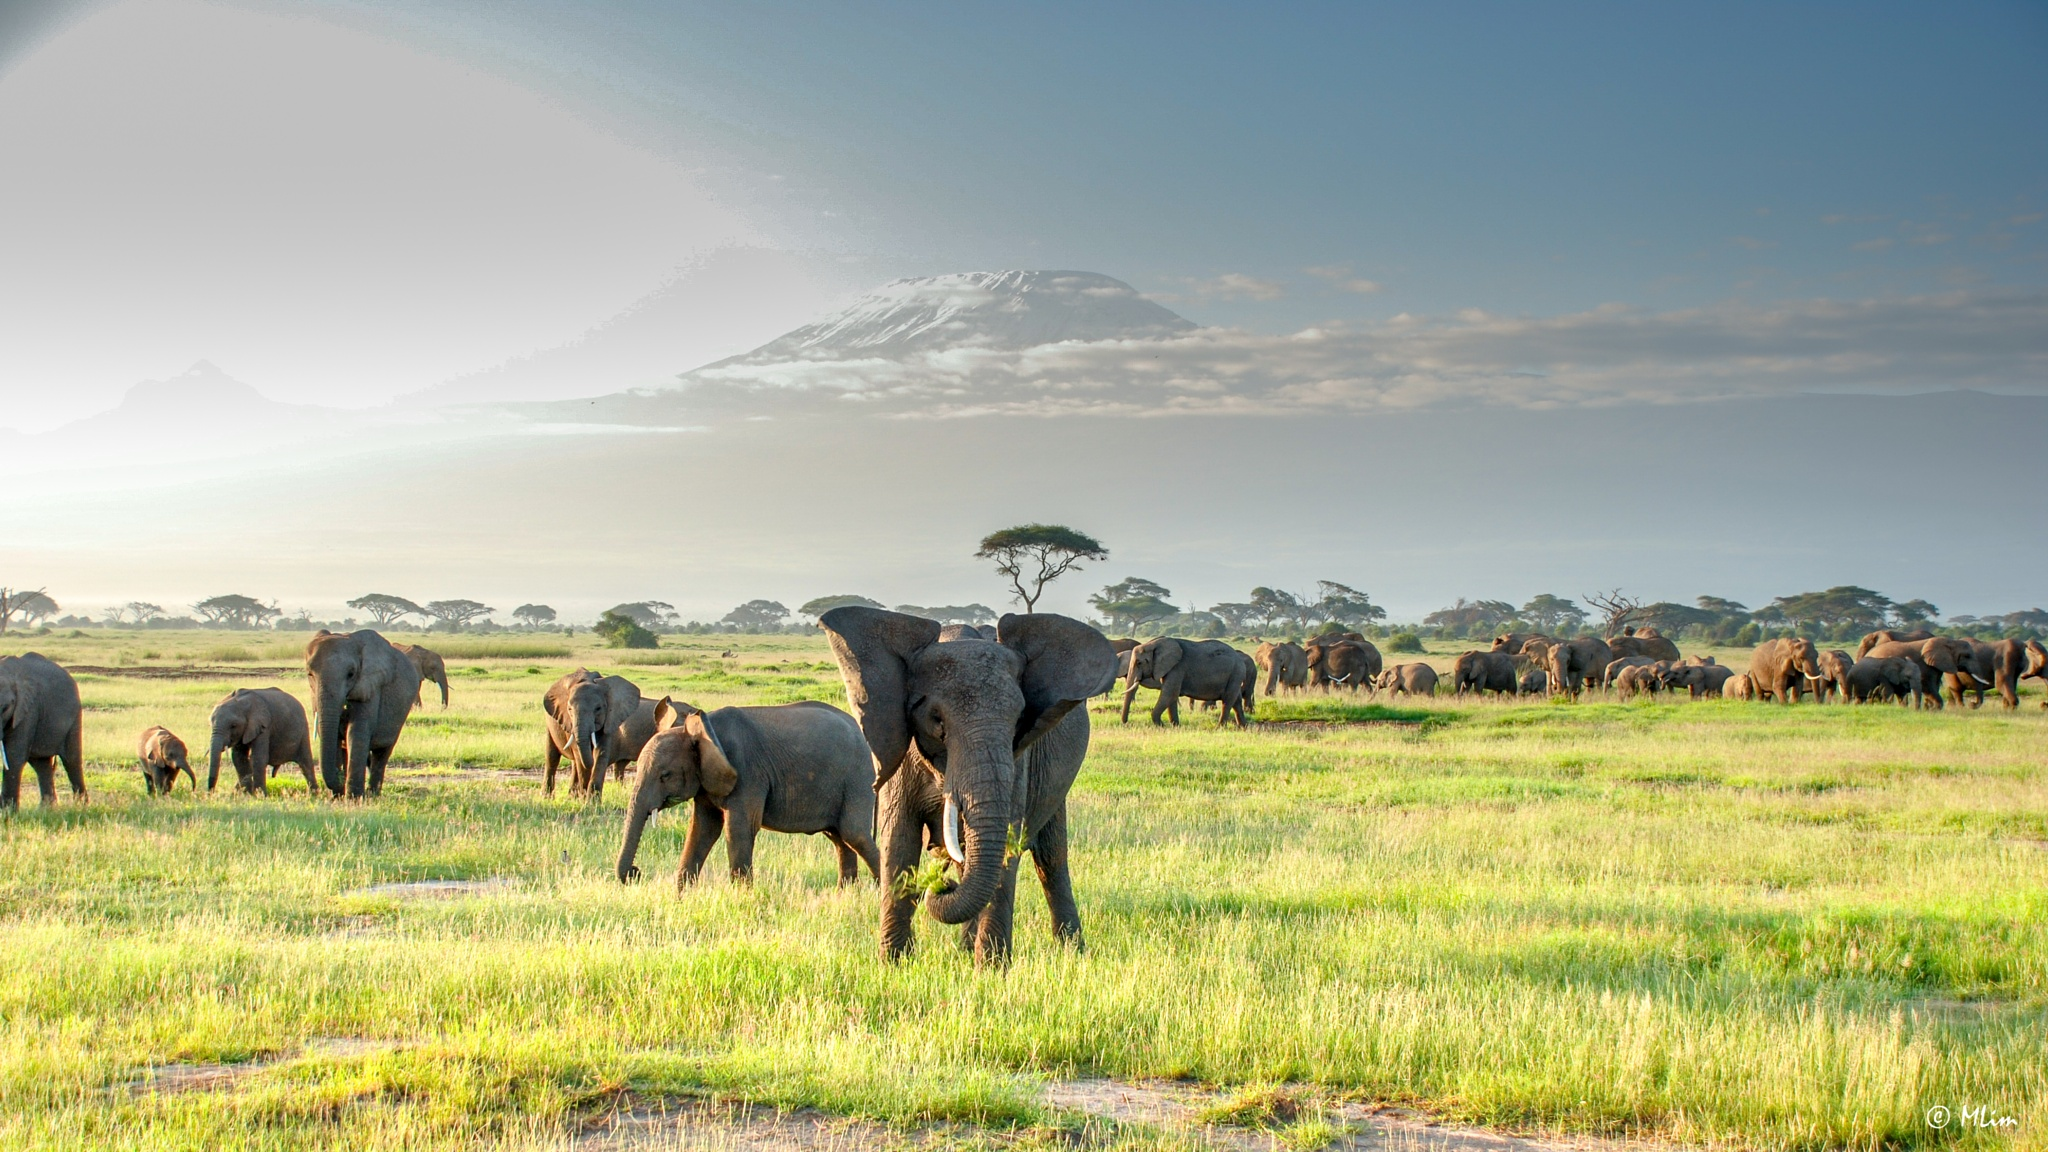 Elephants by Meng Lim